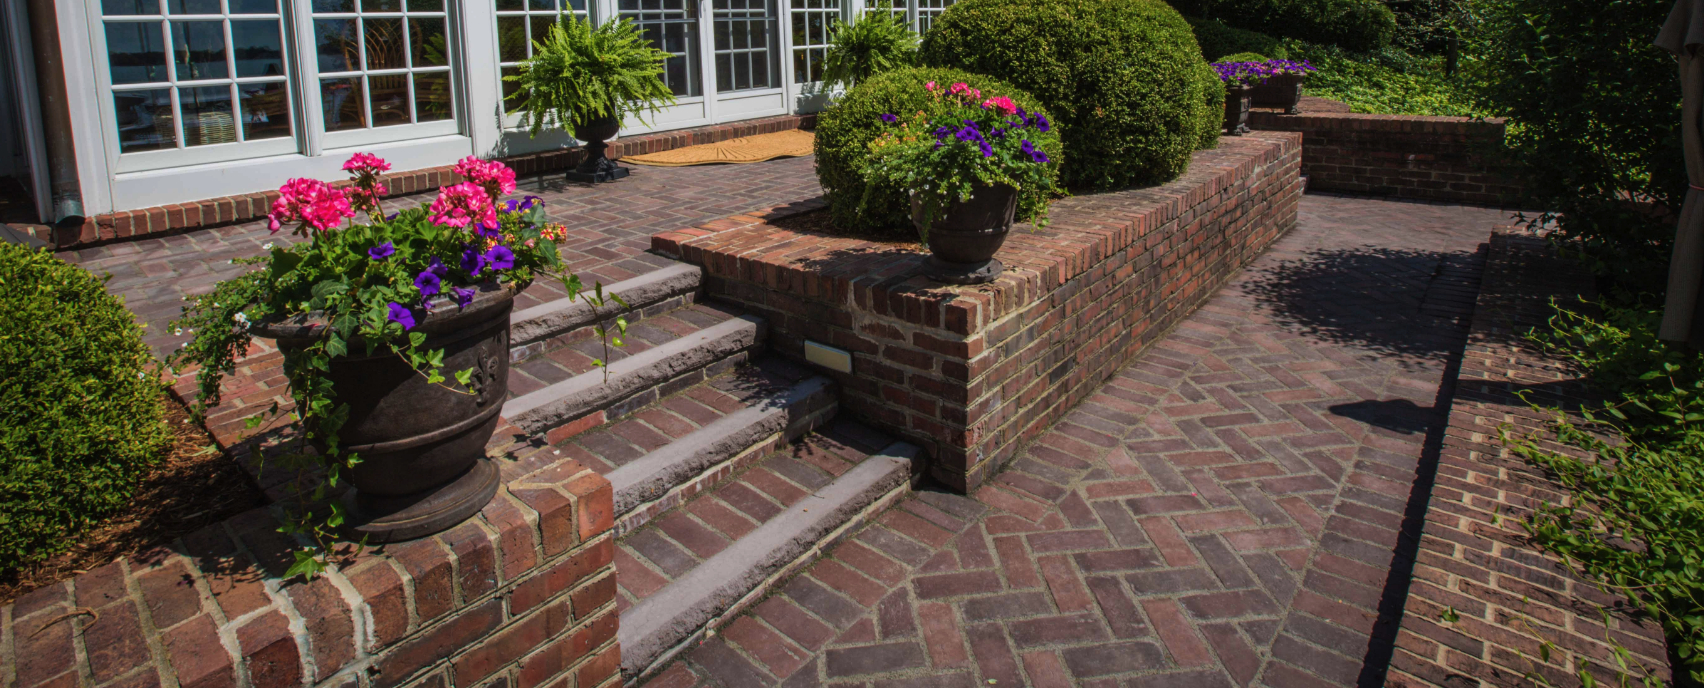 Patio Design Ideas Using Concrete Pavers For Big Backyard Style intended for Backyard Landscaping Ideas With Pavers